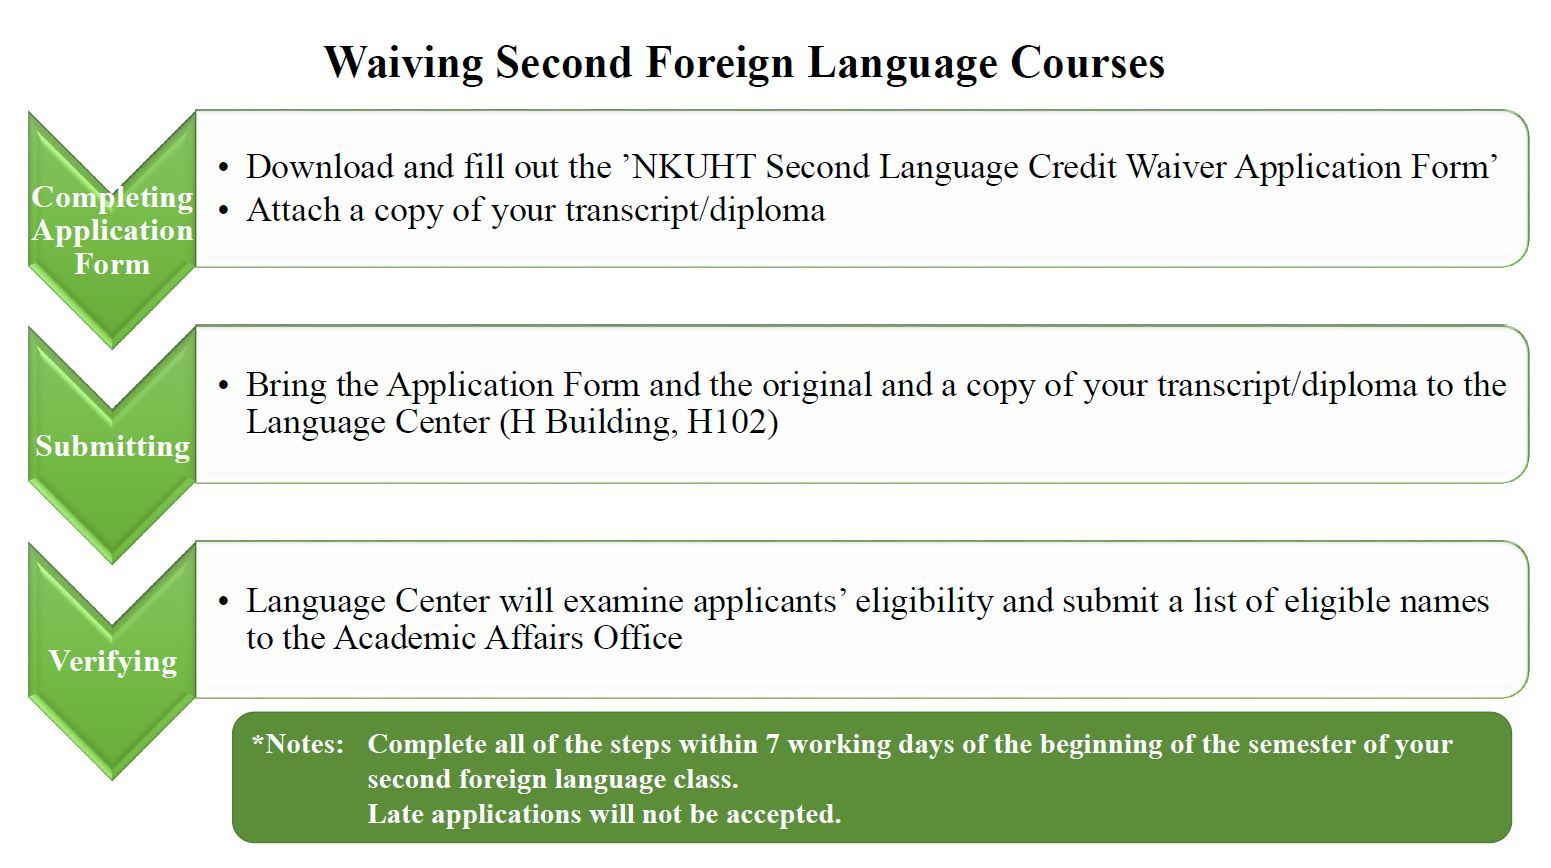 02_Waiving Second Foreign Language Courses_1080806